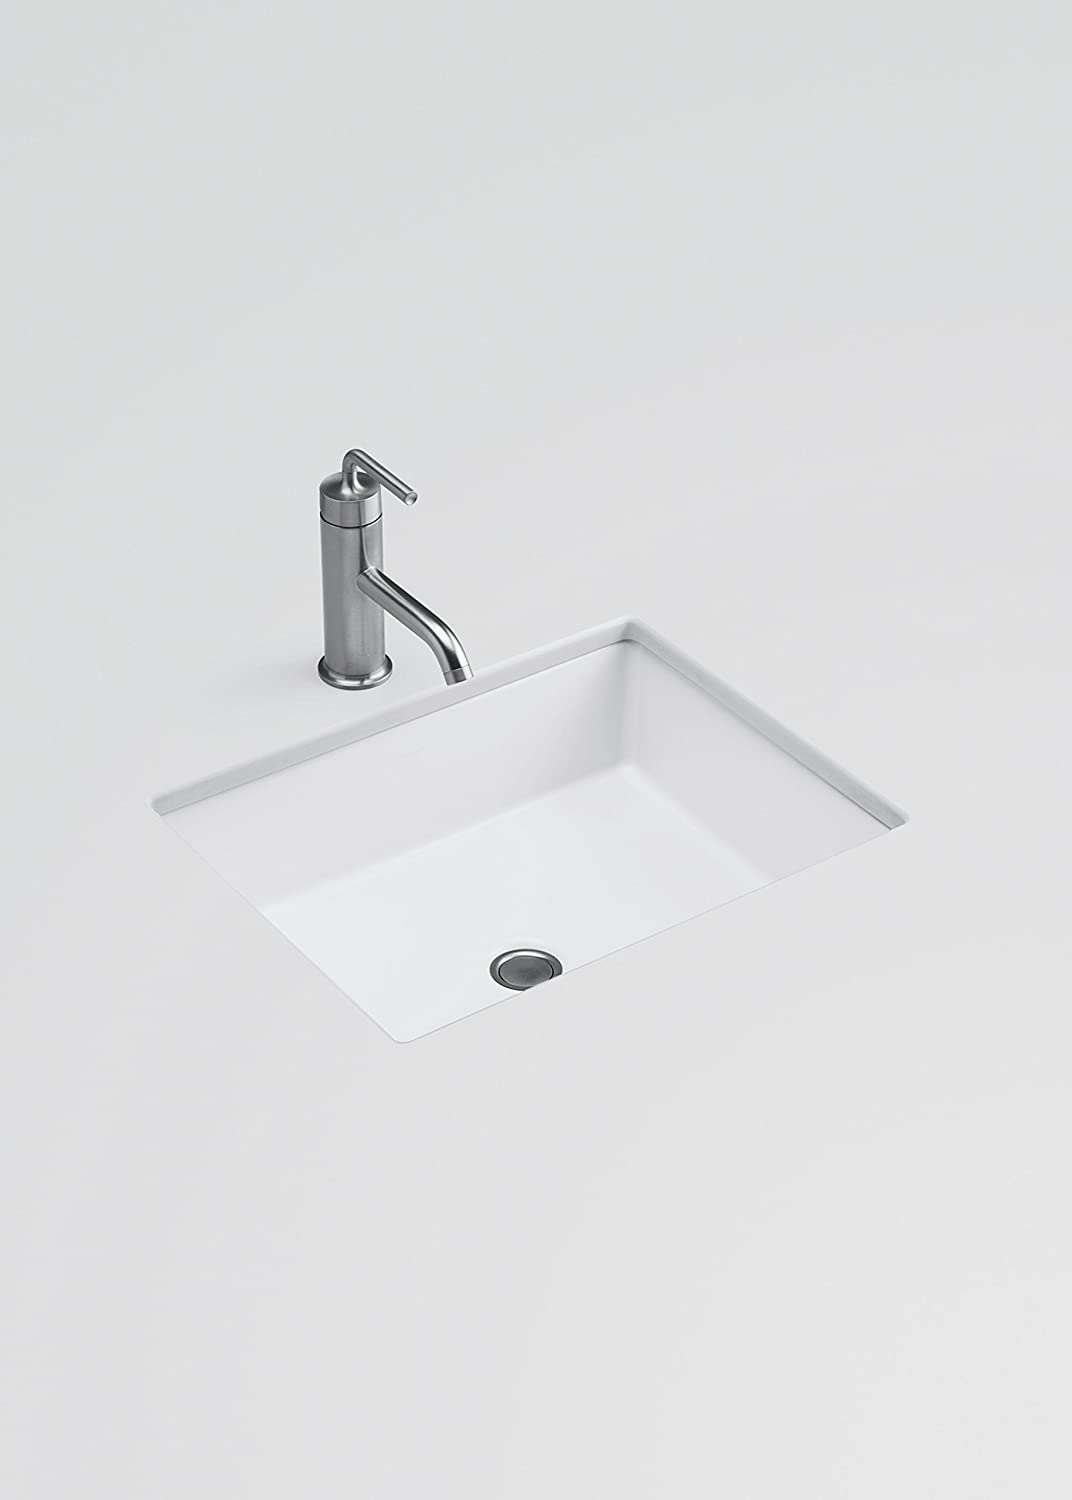 Shop kohler caxton biscuit undermount oval bathroom sink at lowes com - Kohler K 2882 0 Verticyl Rectangle Undercounter Bathroom Sink White Single Bowl Sinks Amazon Com